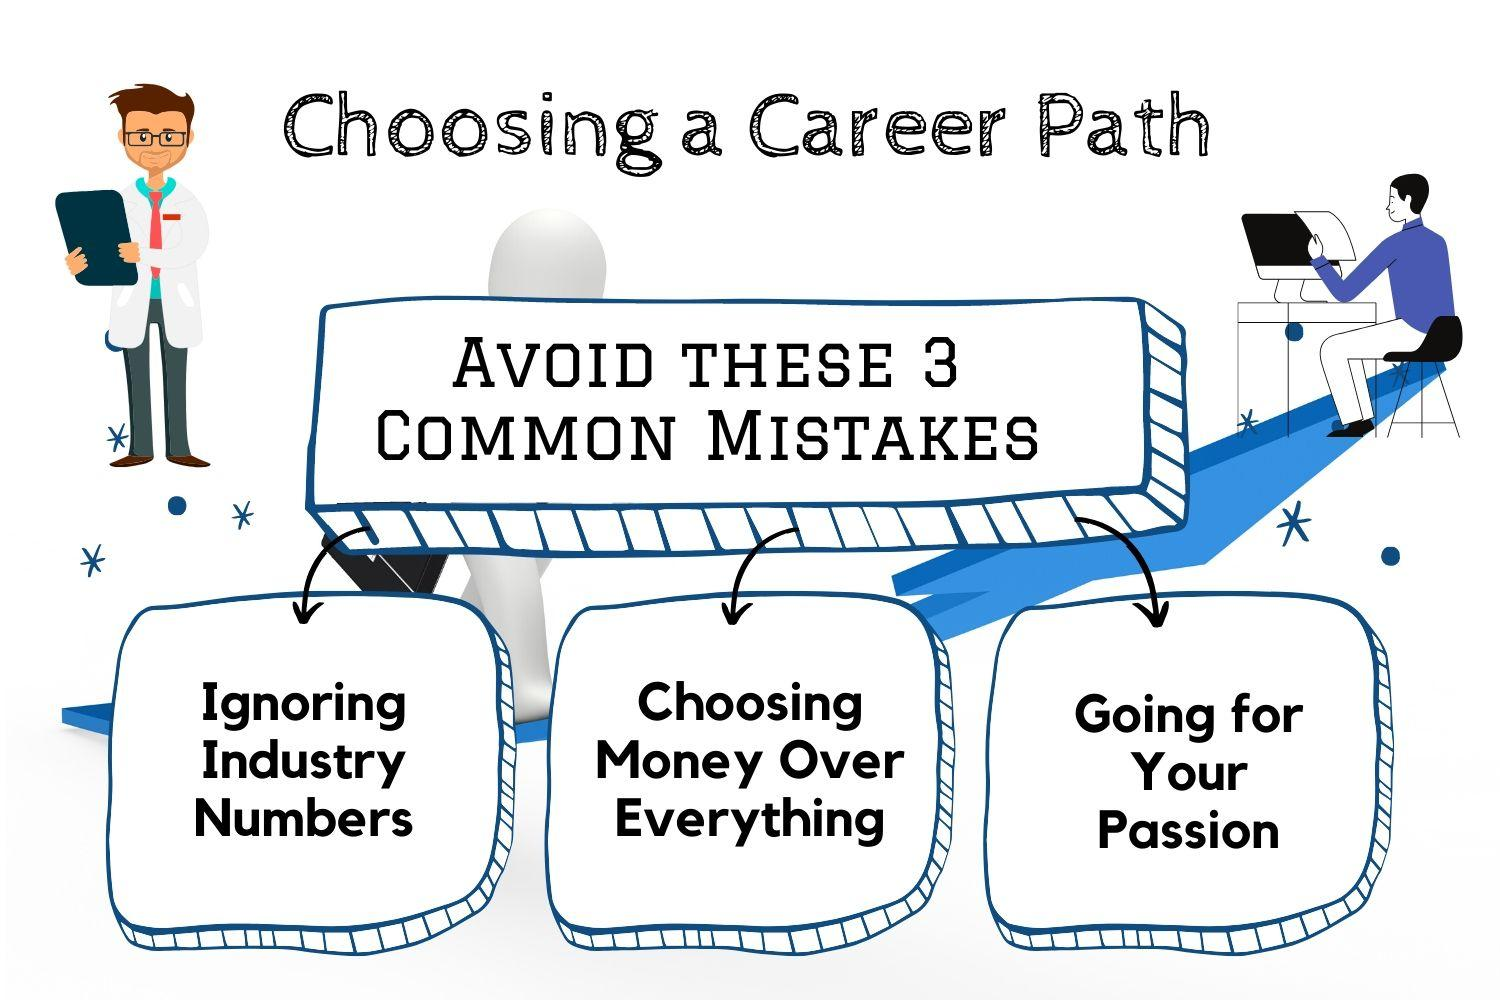 Choosing a Career Path